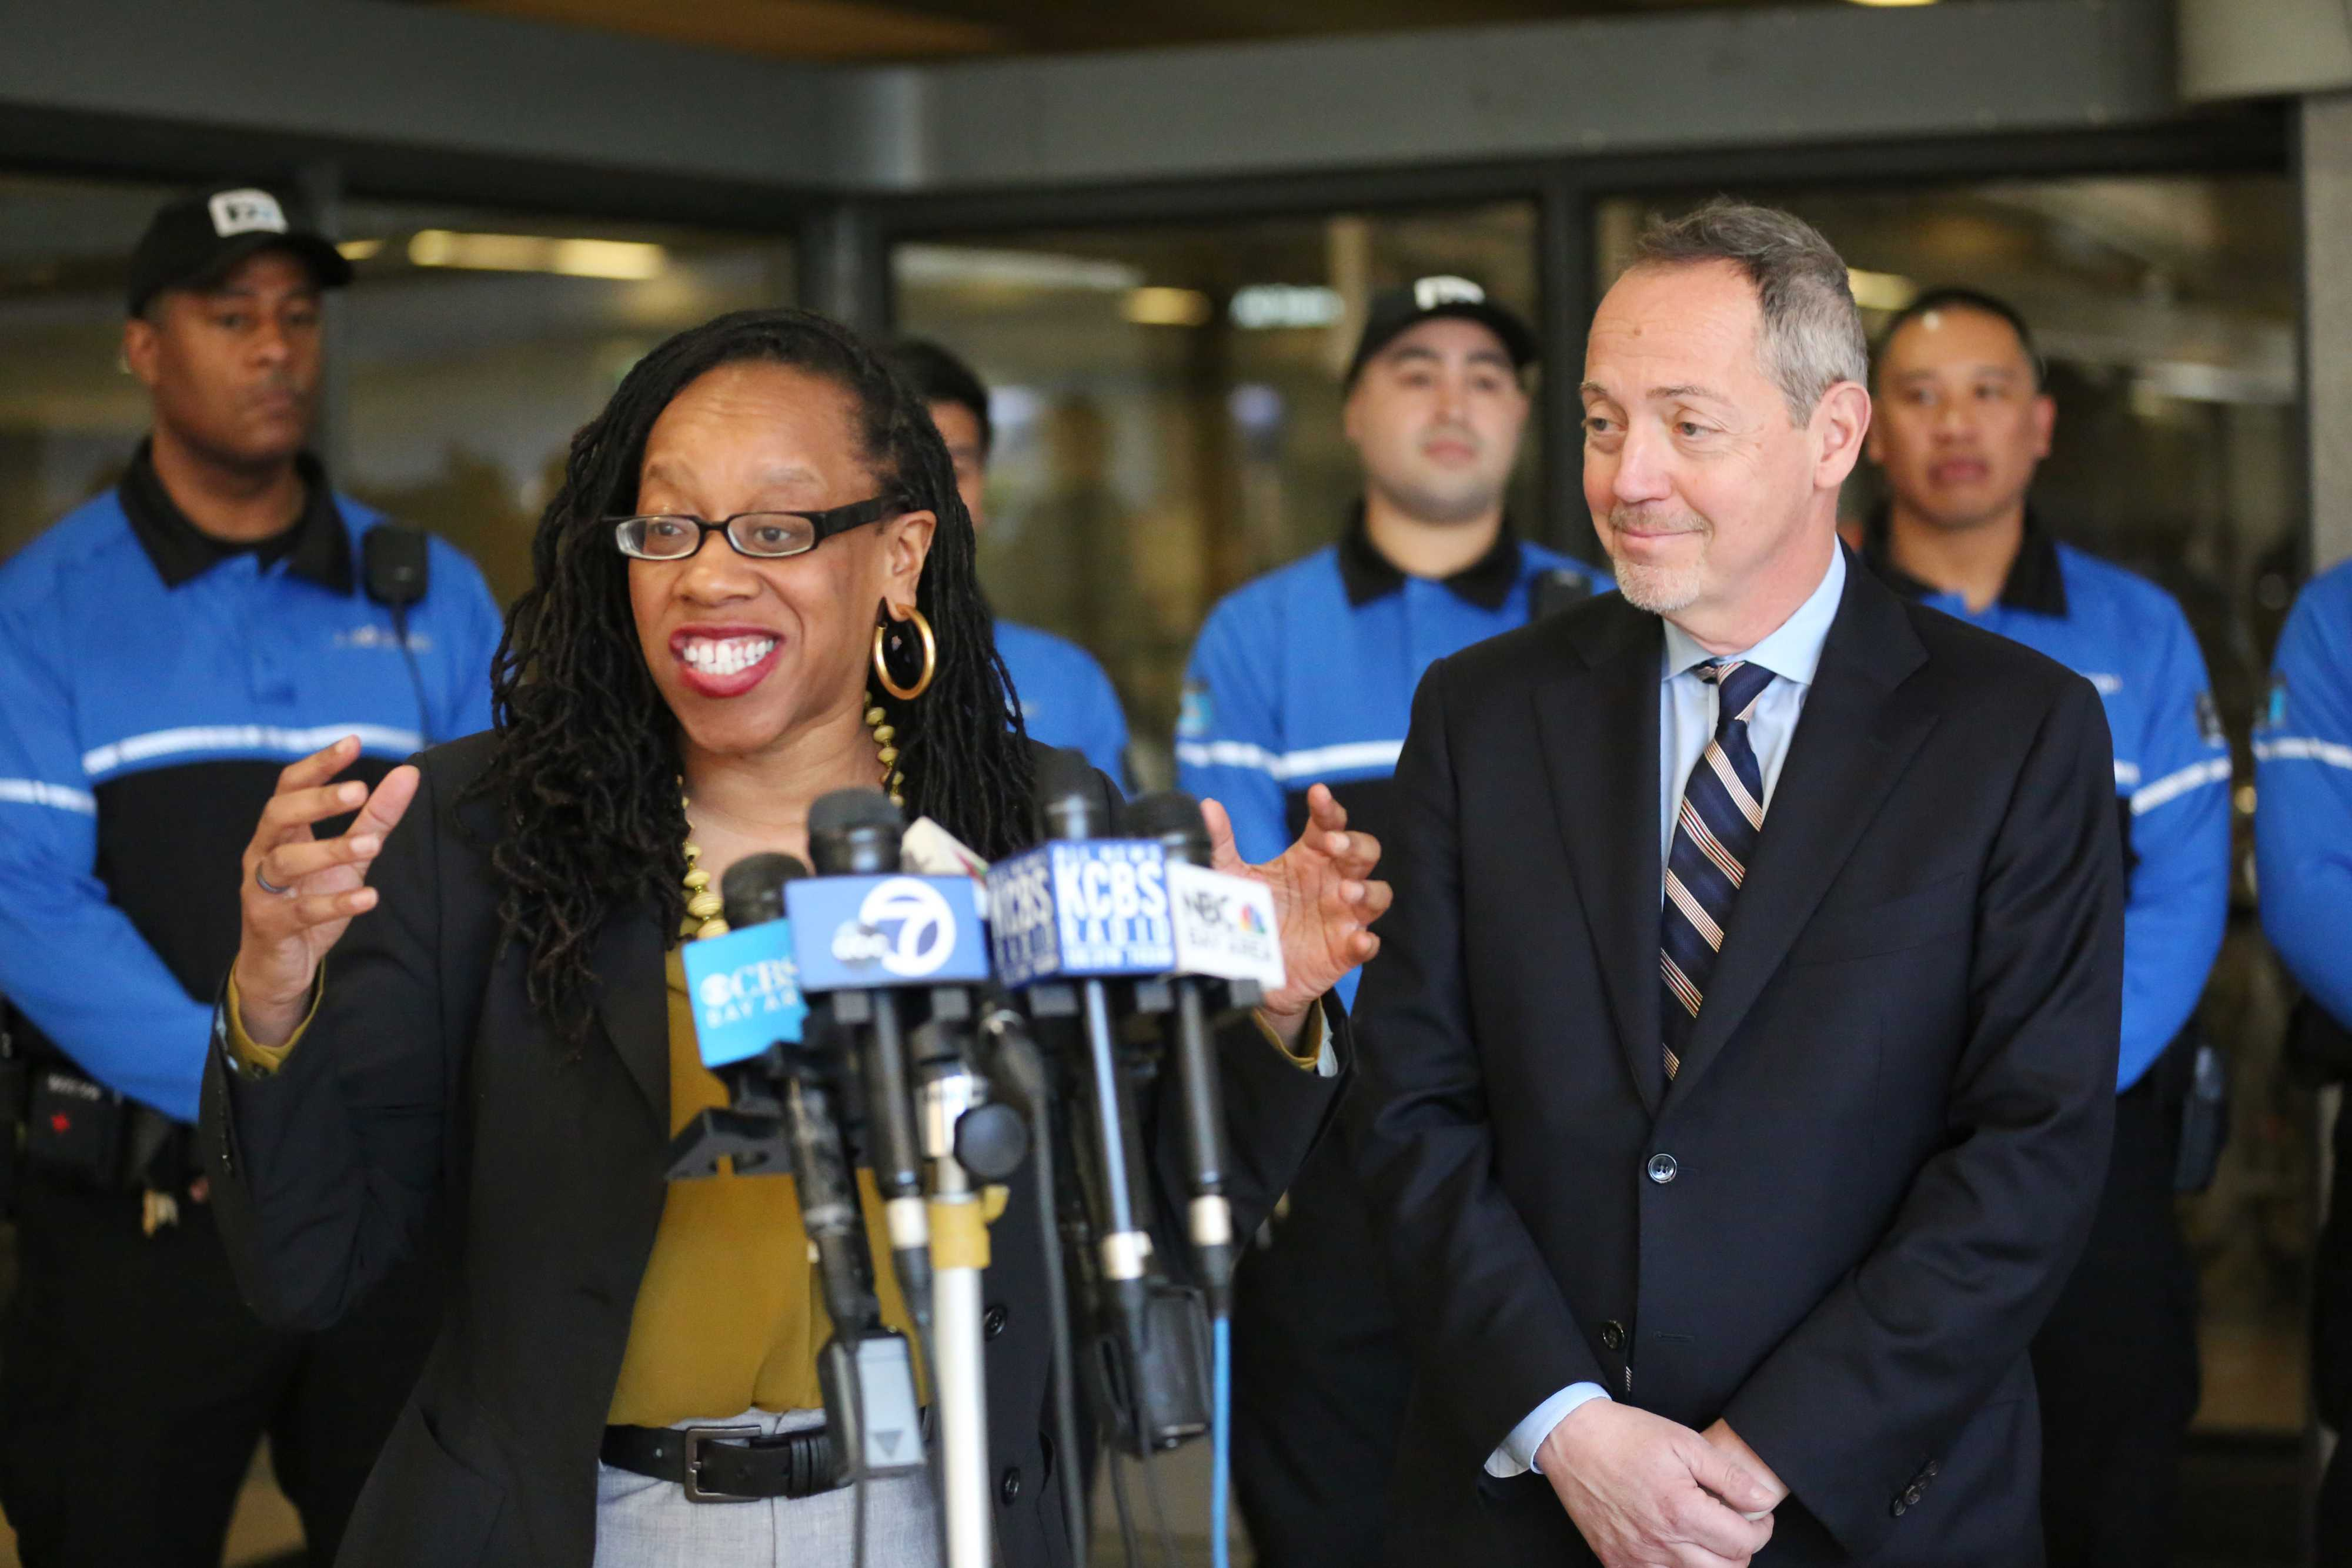 BART Board President Lateefah Simon and Board Member Bevan Dufty at press conference